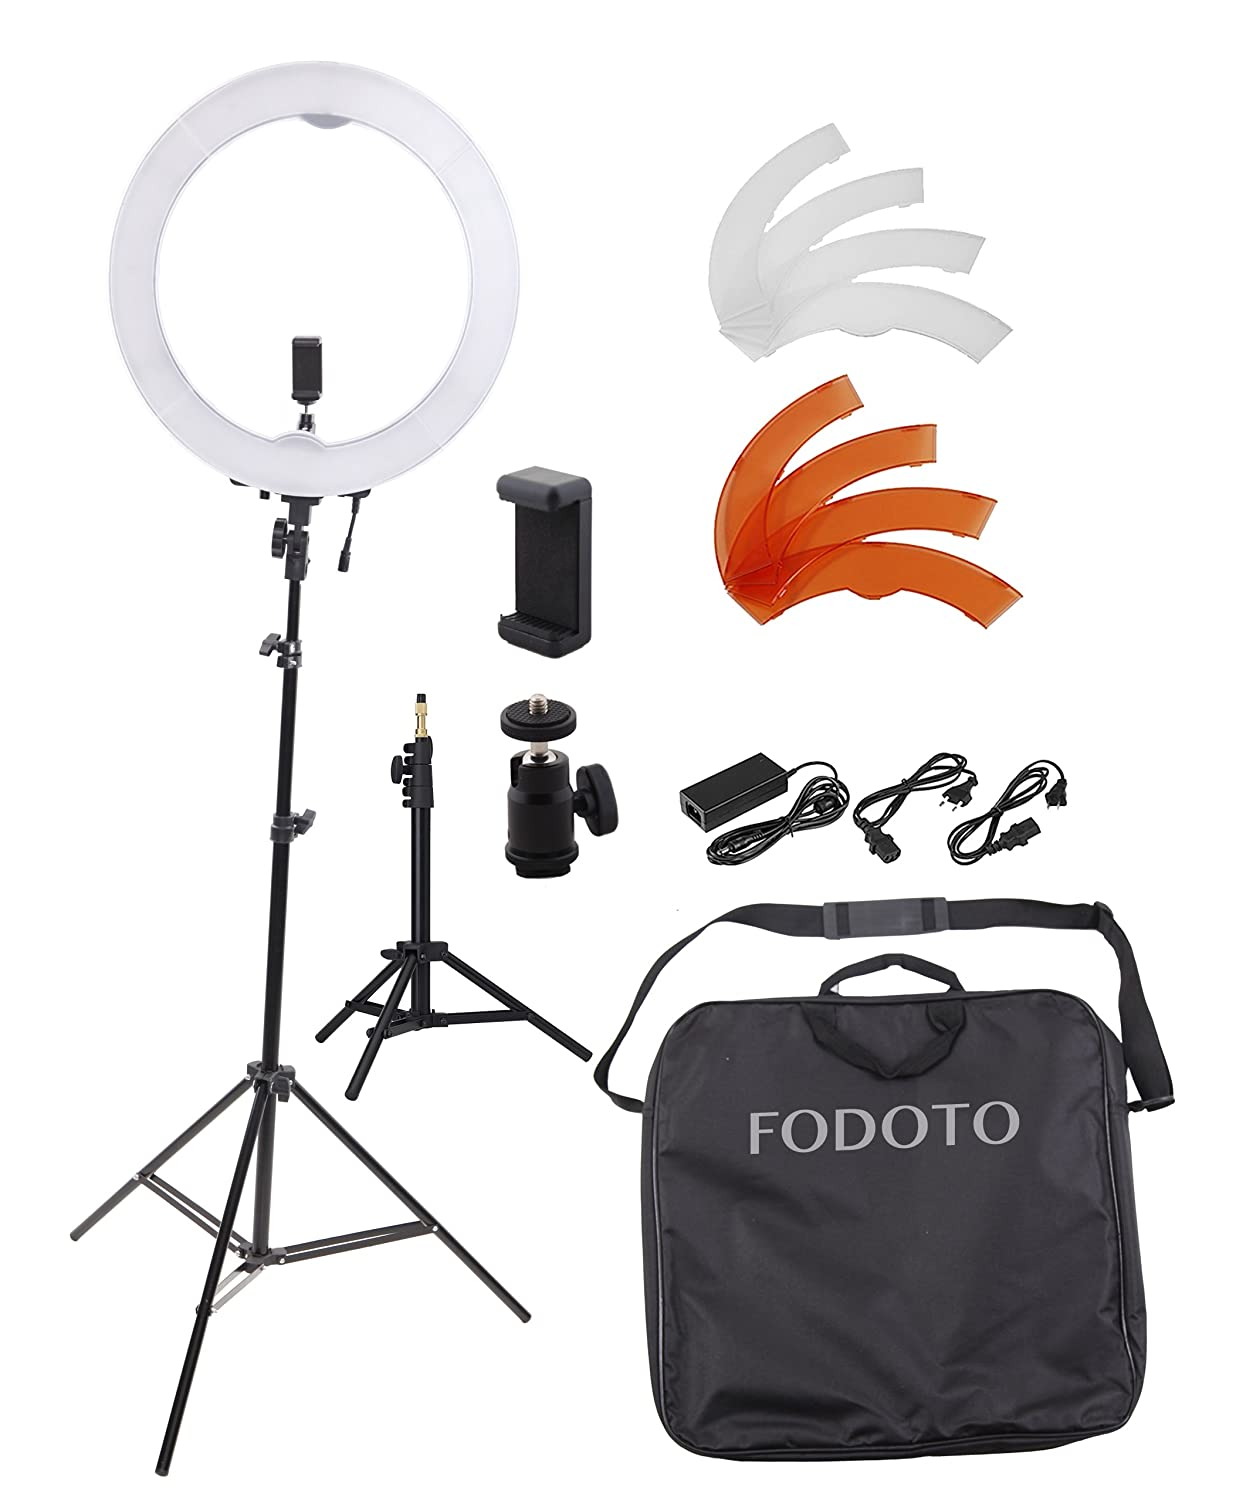 Fodoto 13 inch LED Ring Light w/ 7ft Stand & Table-Top Stand , Universal Smartphone & Camera Mounts